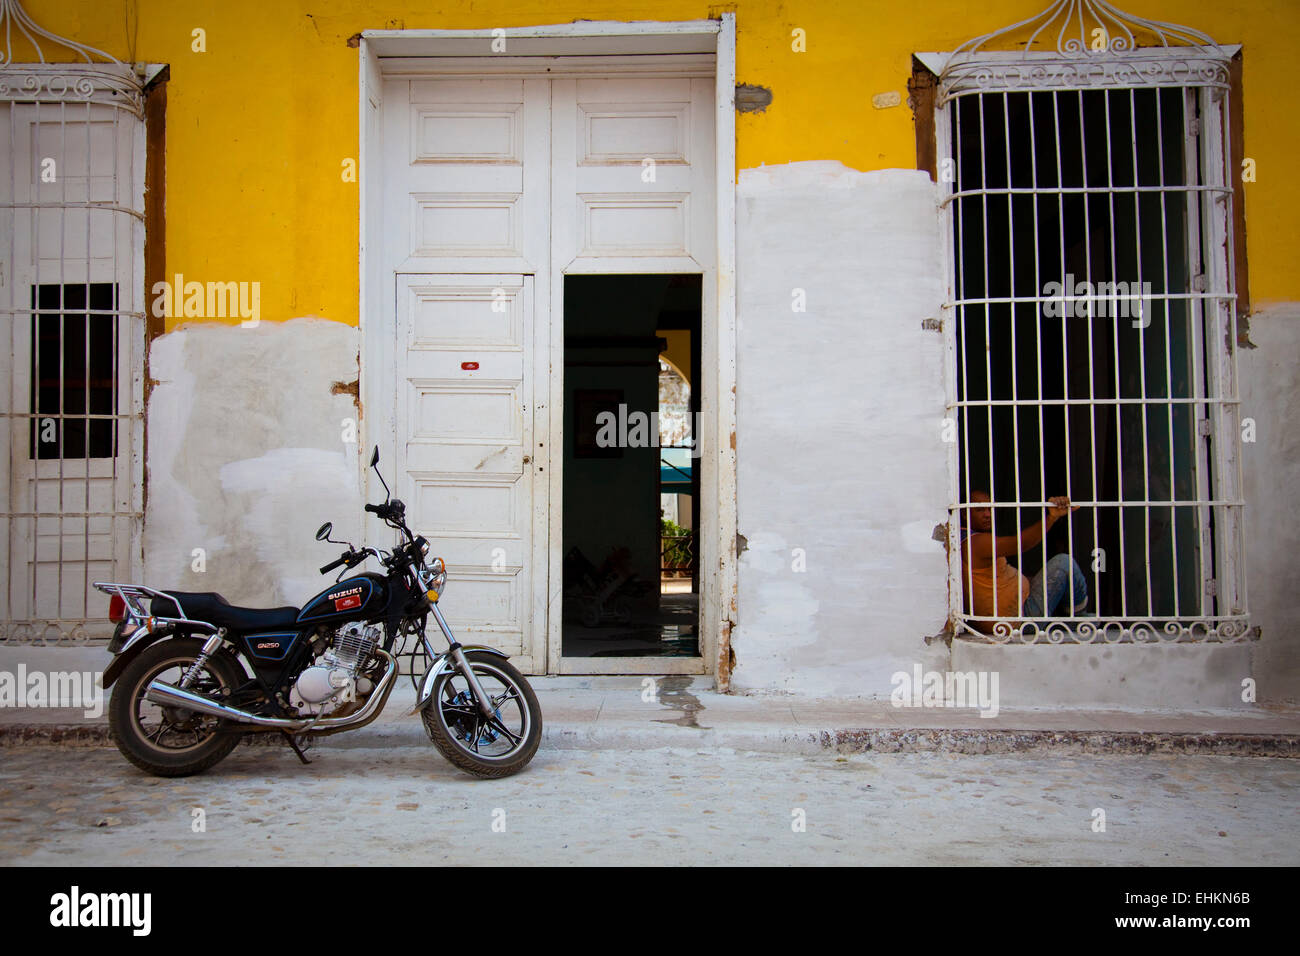 Moped in front of yellow wall, Trinidad, Cuba - Stock Image